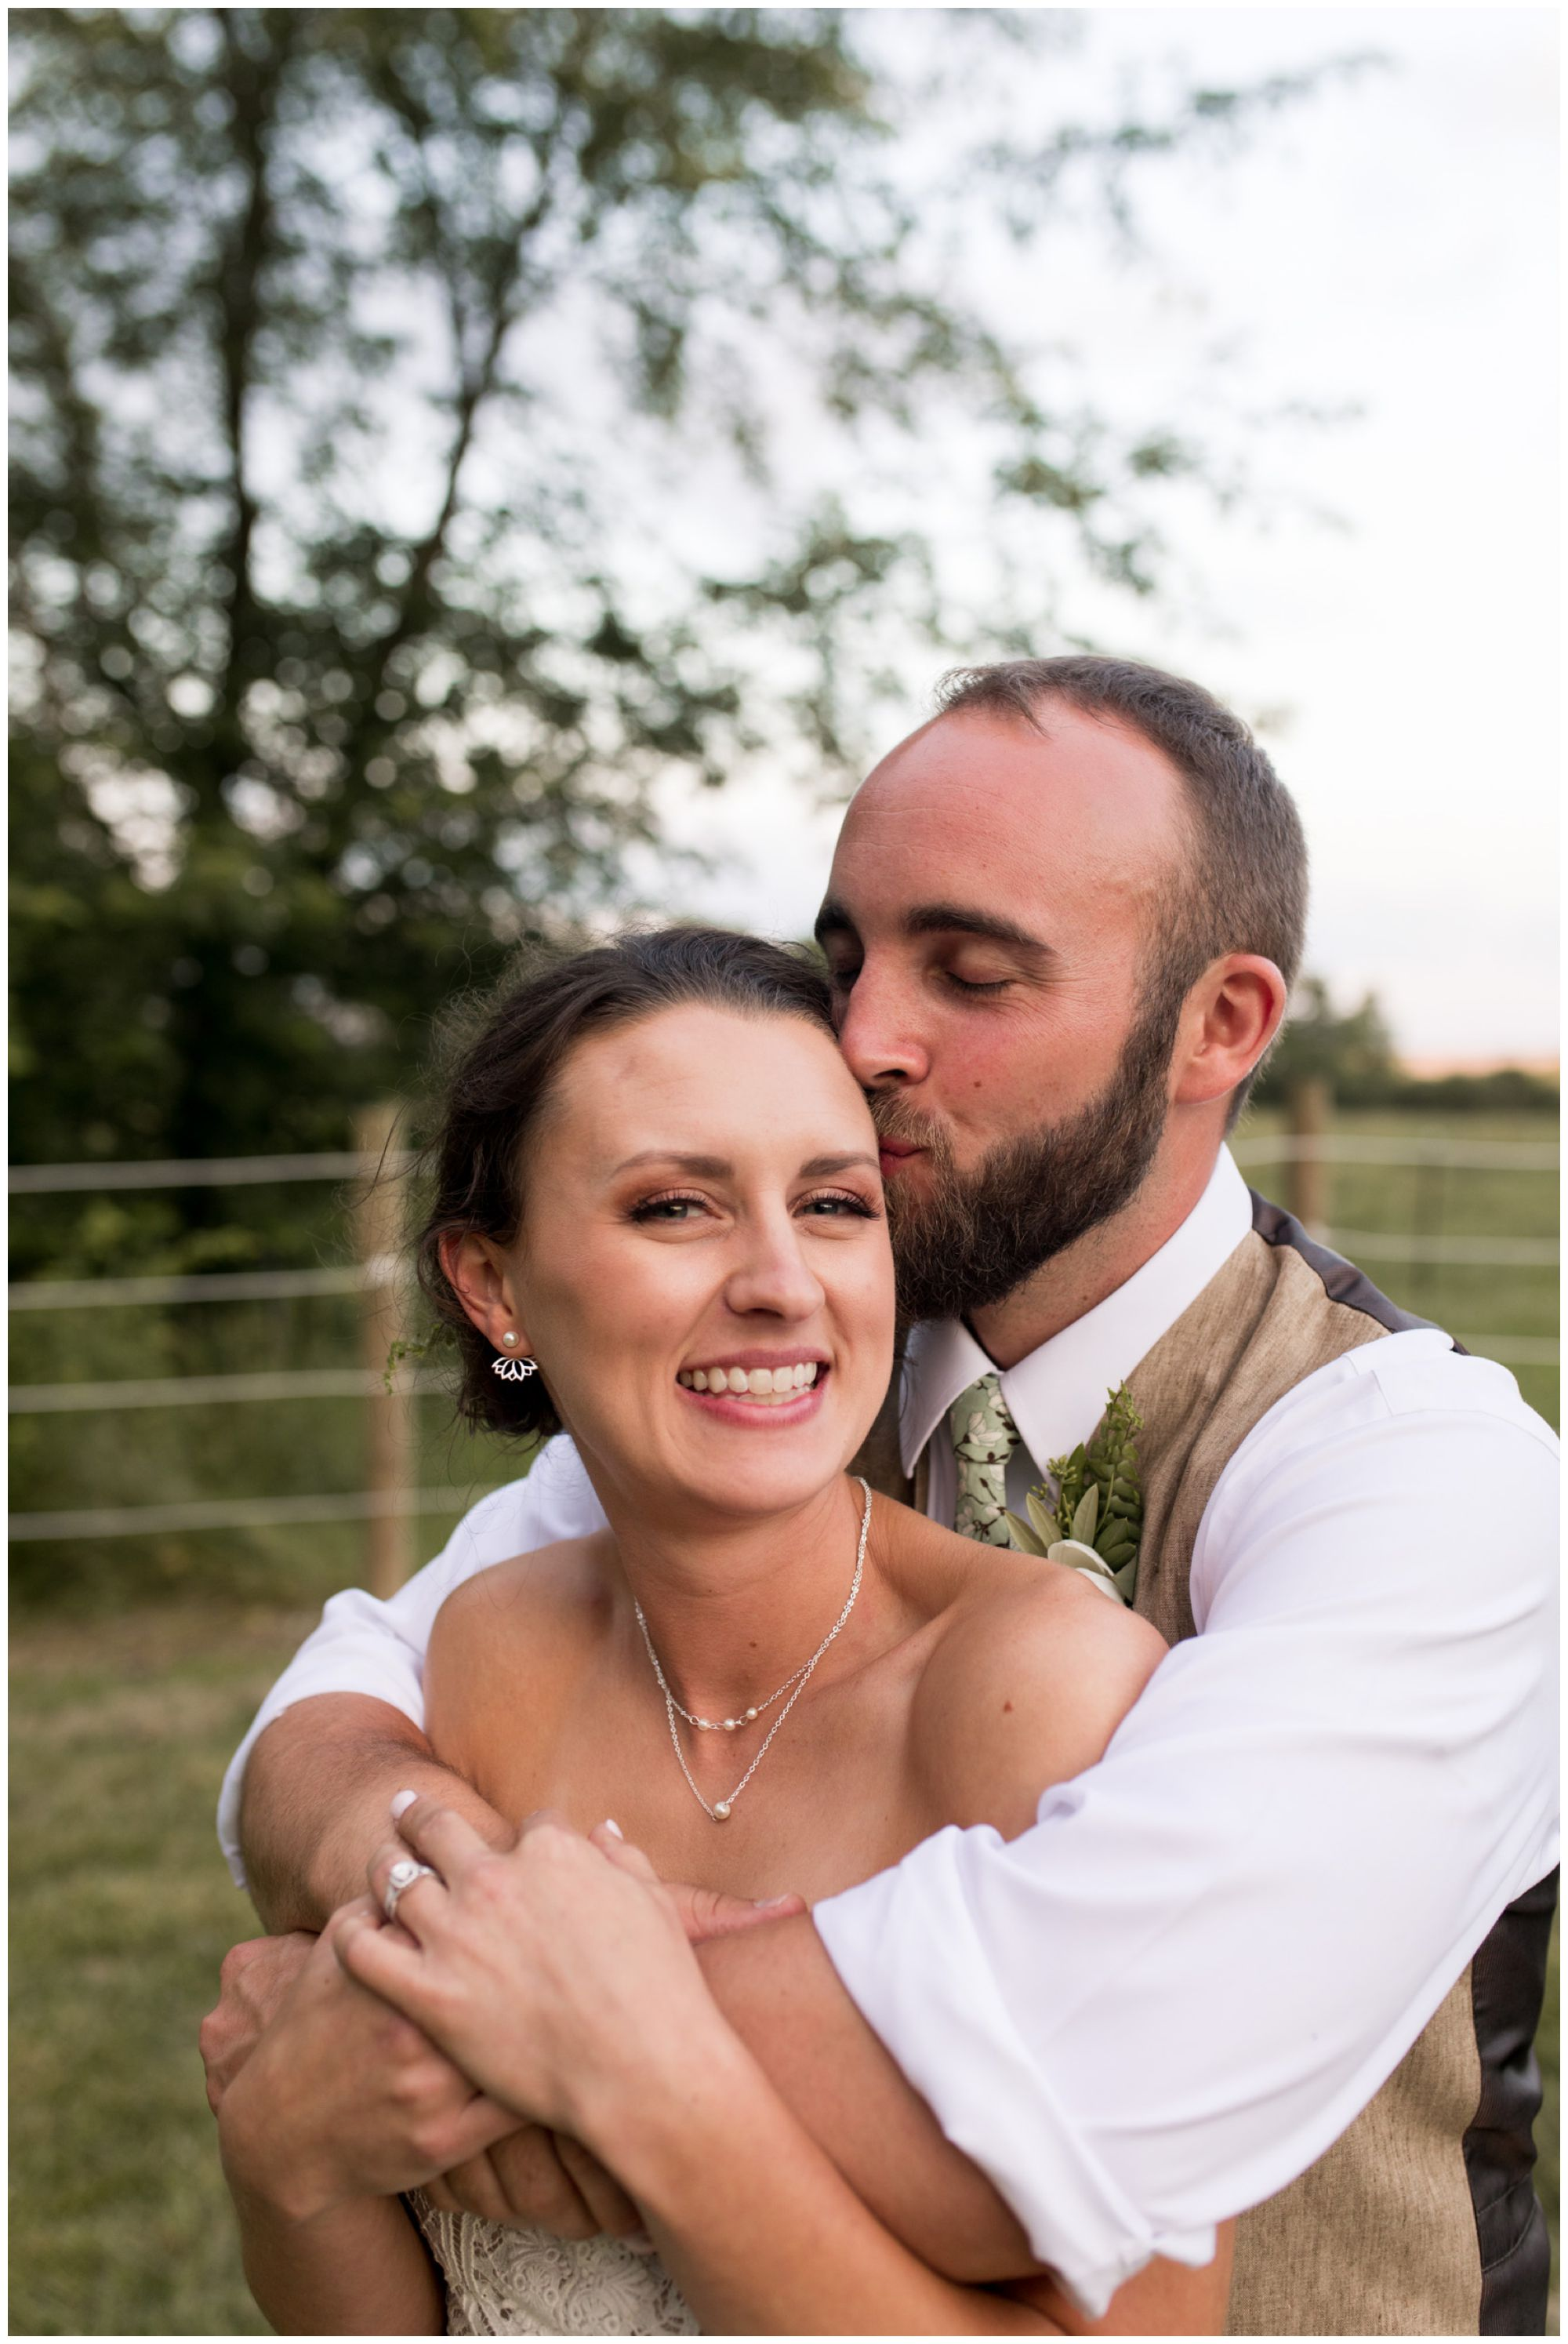 groom kisses bride's forehead as she grins during sunset portraits in Indianapolis